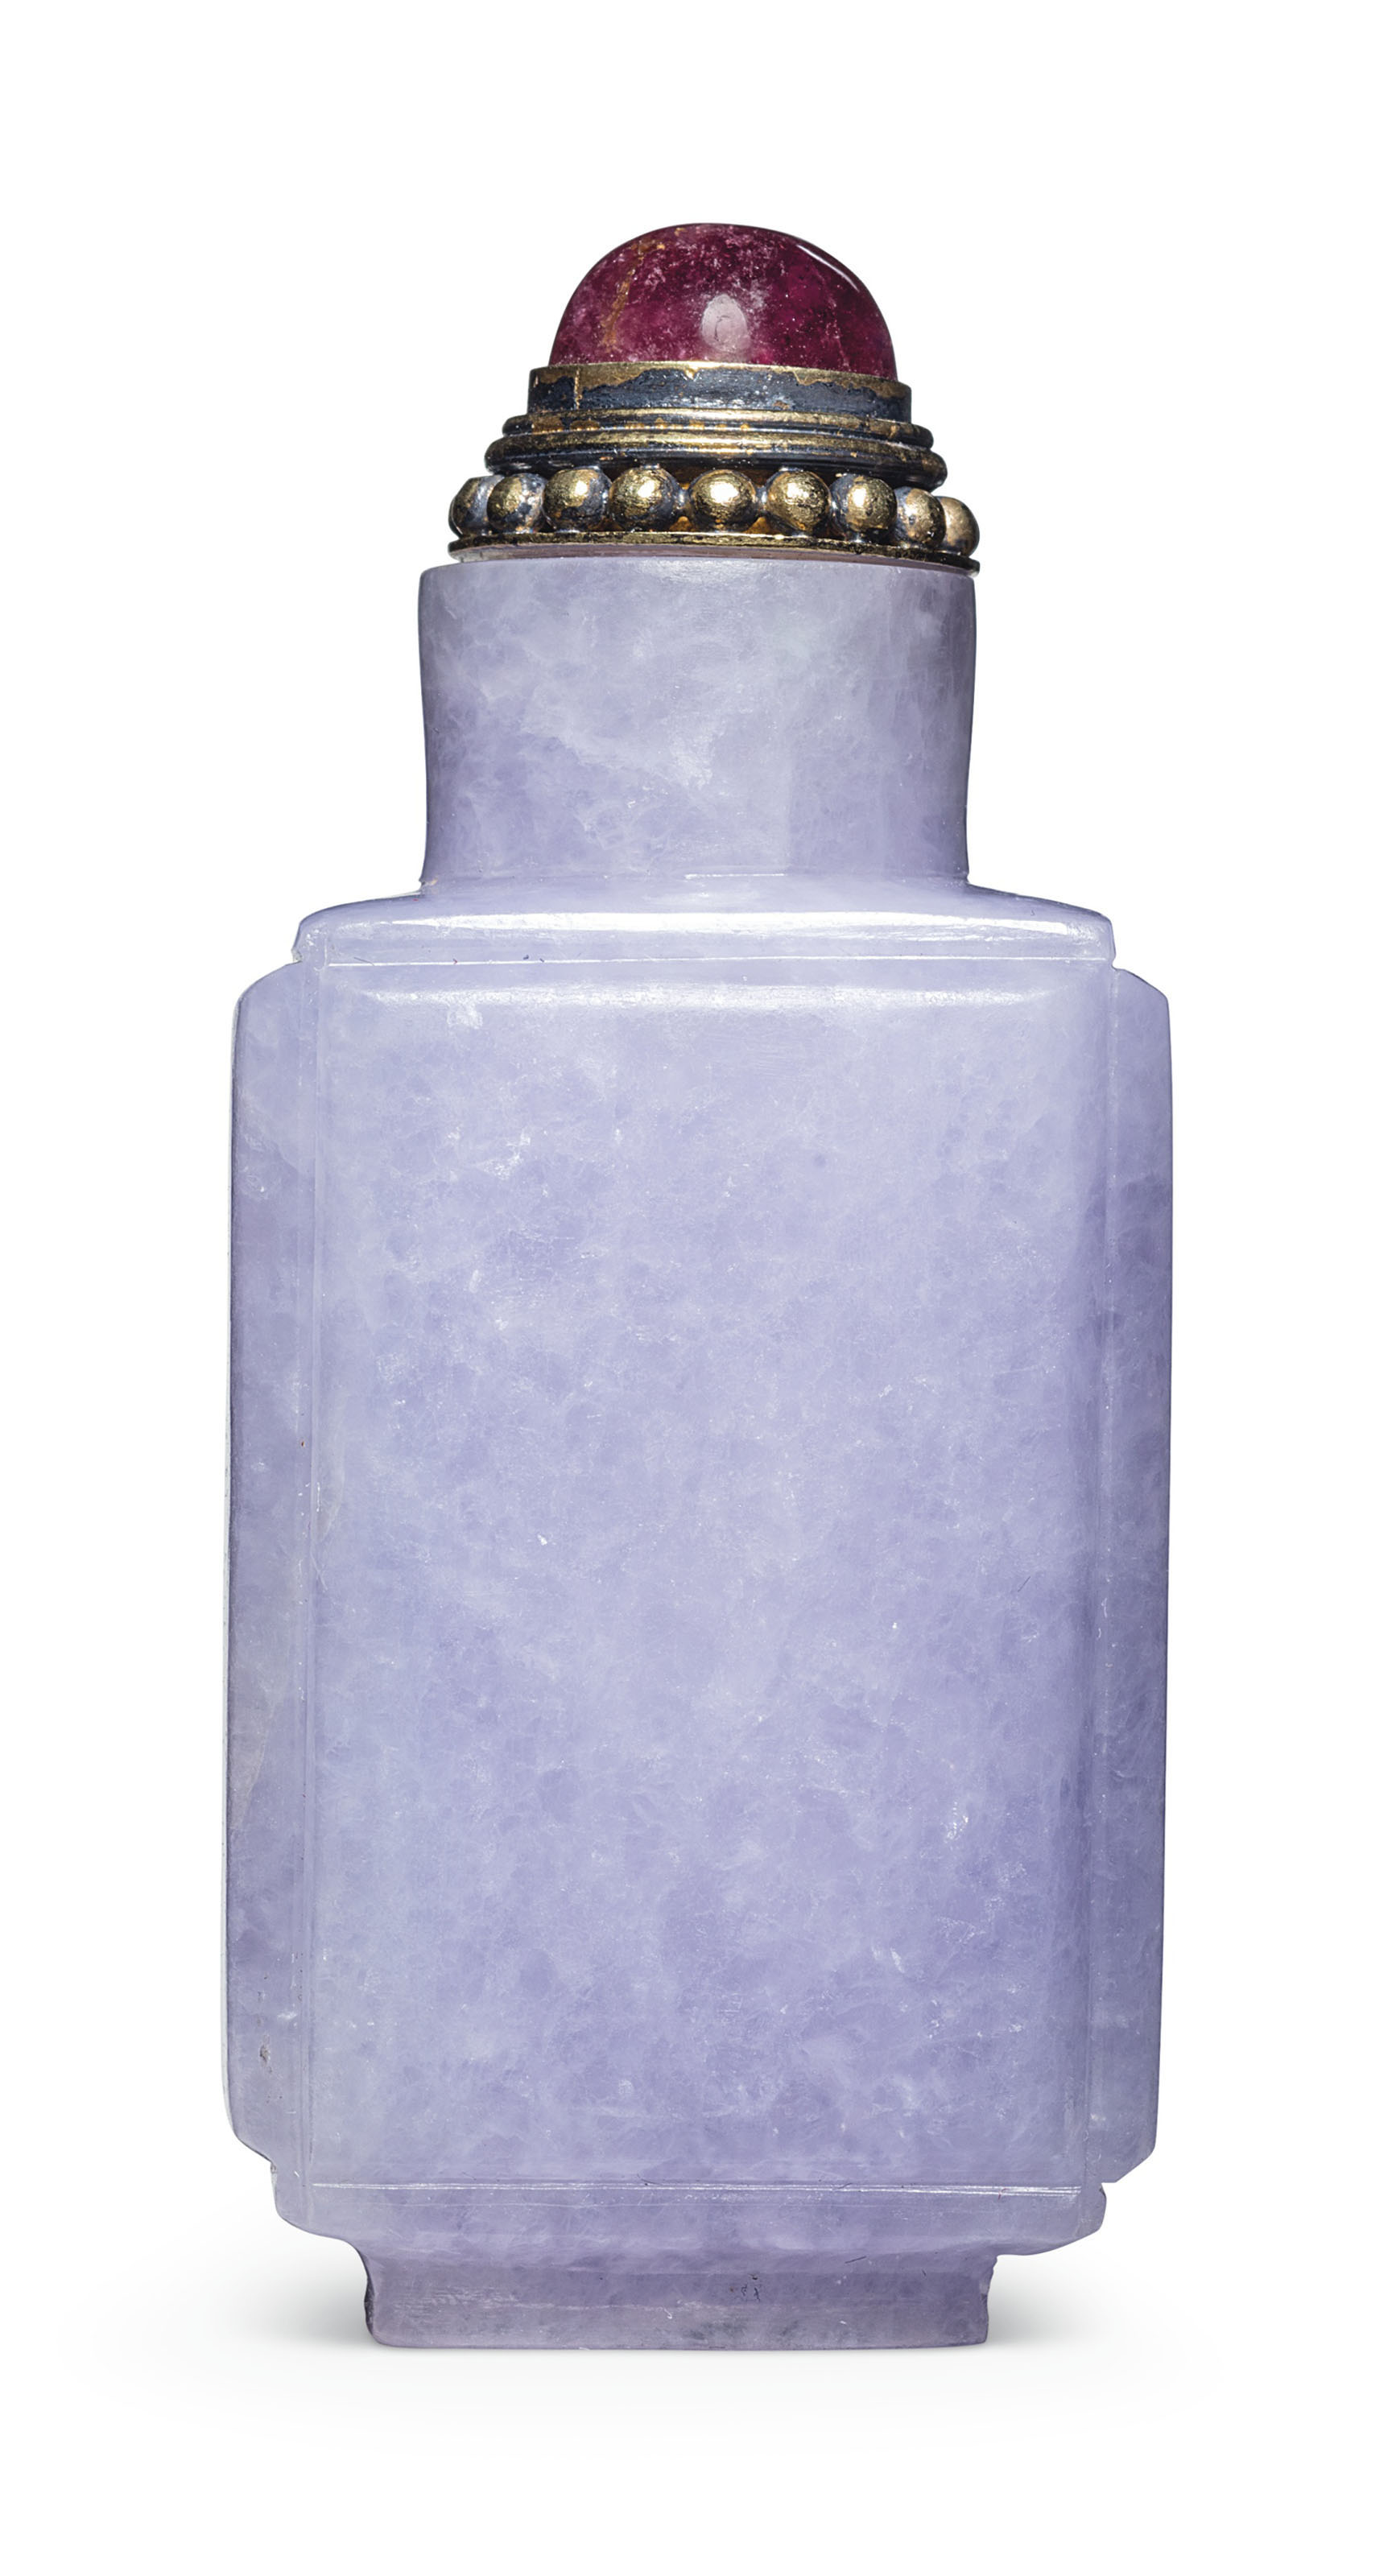 A lavender jadeite rectangular snuff bottle, 1780-1860. 2¼ in (5.7 cm) high, pink tourmaline stopper. Estimate $14,000-18,000. This lot is offered in The Ruth and Carl Barron Collection of Fine Chinese Snuff Bottles Part VI on 12 September 2018 at Christie's in New York